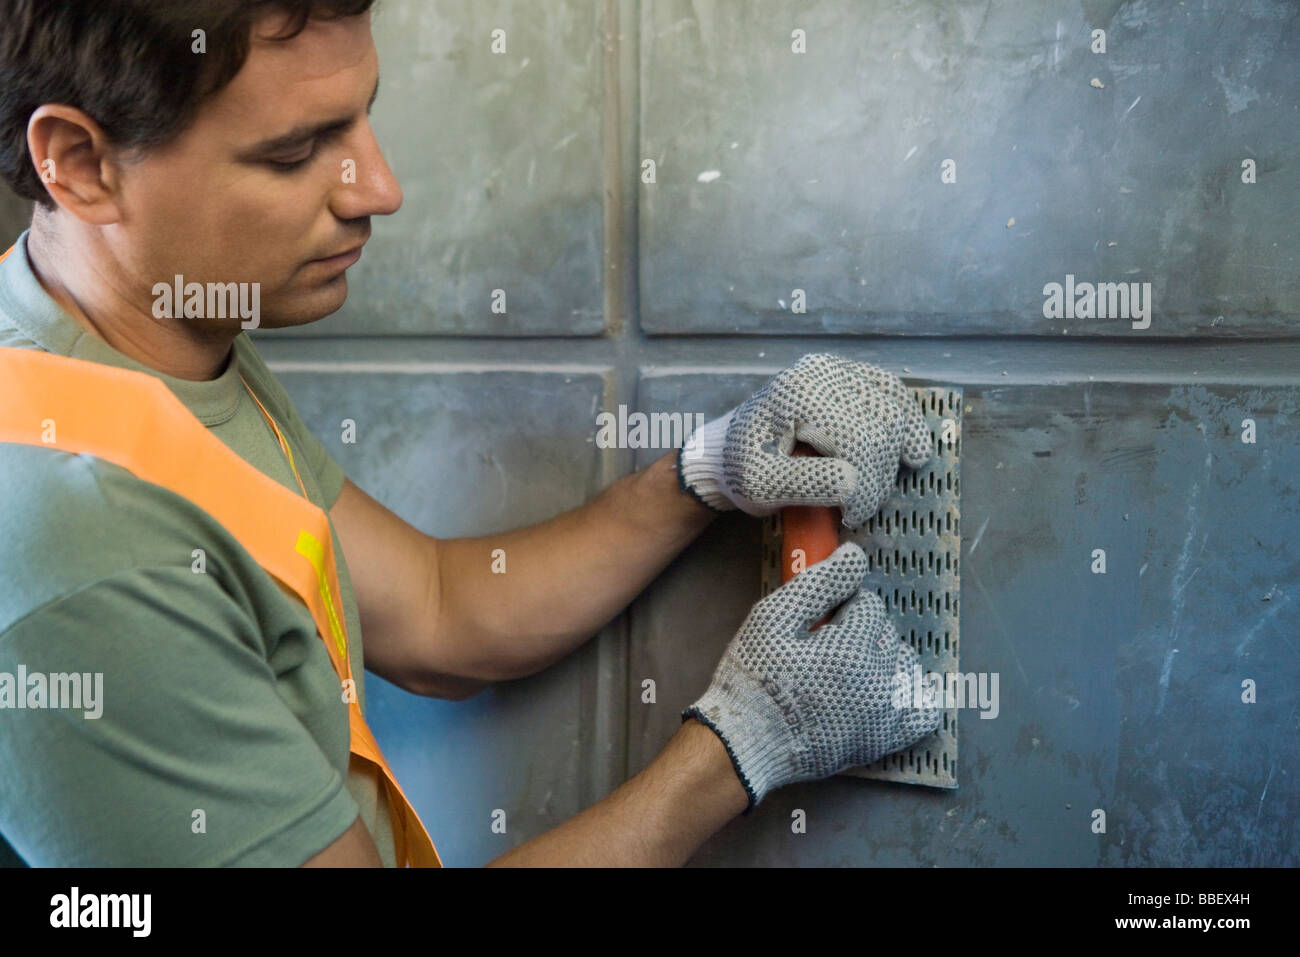 Mason with towel smoothing wall surface, close-up - Stock Image